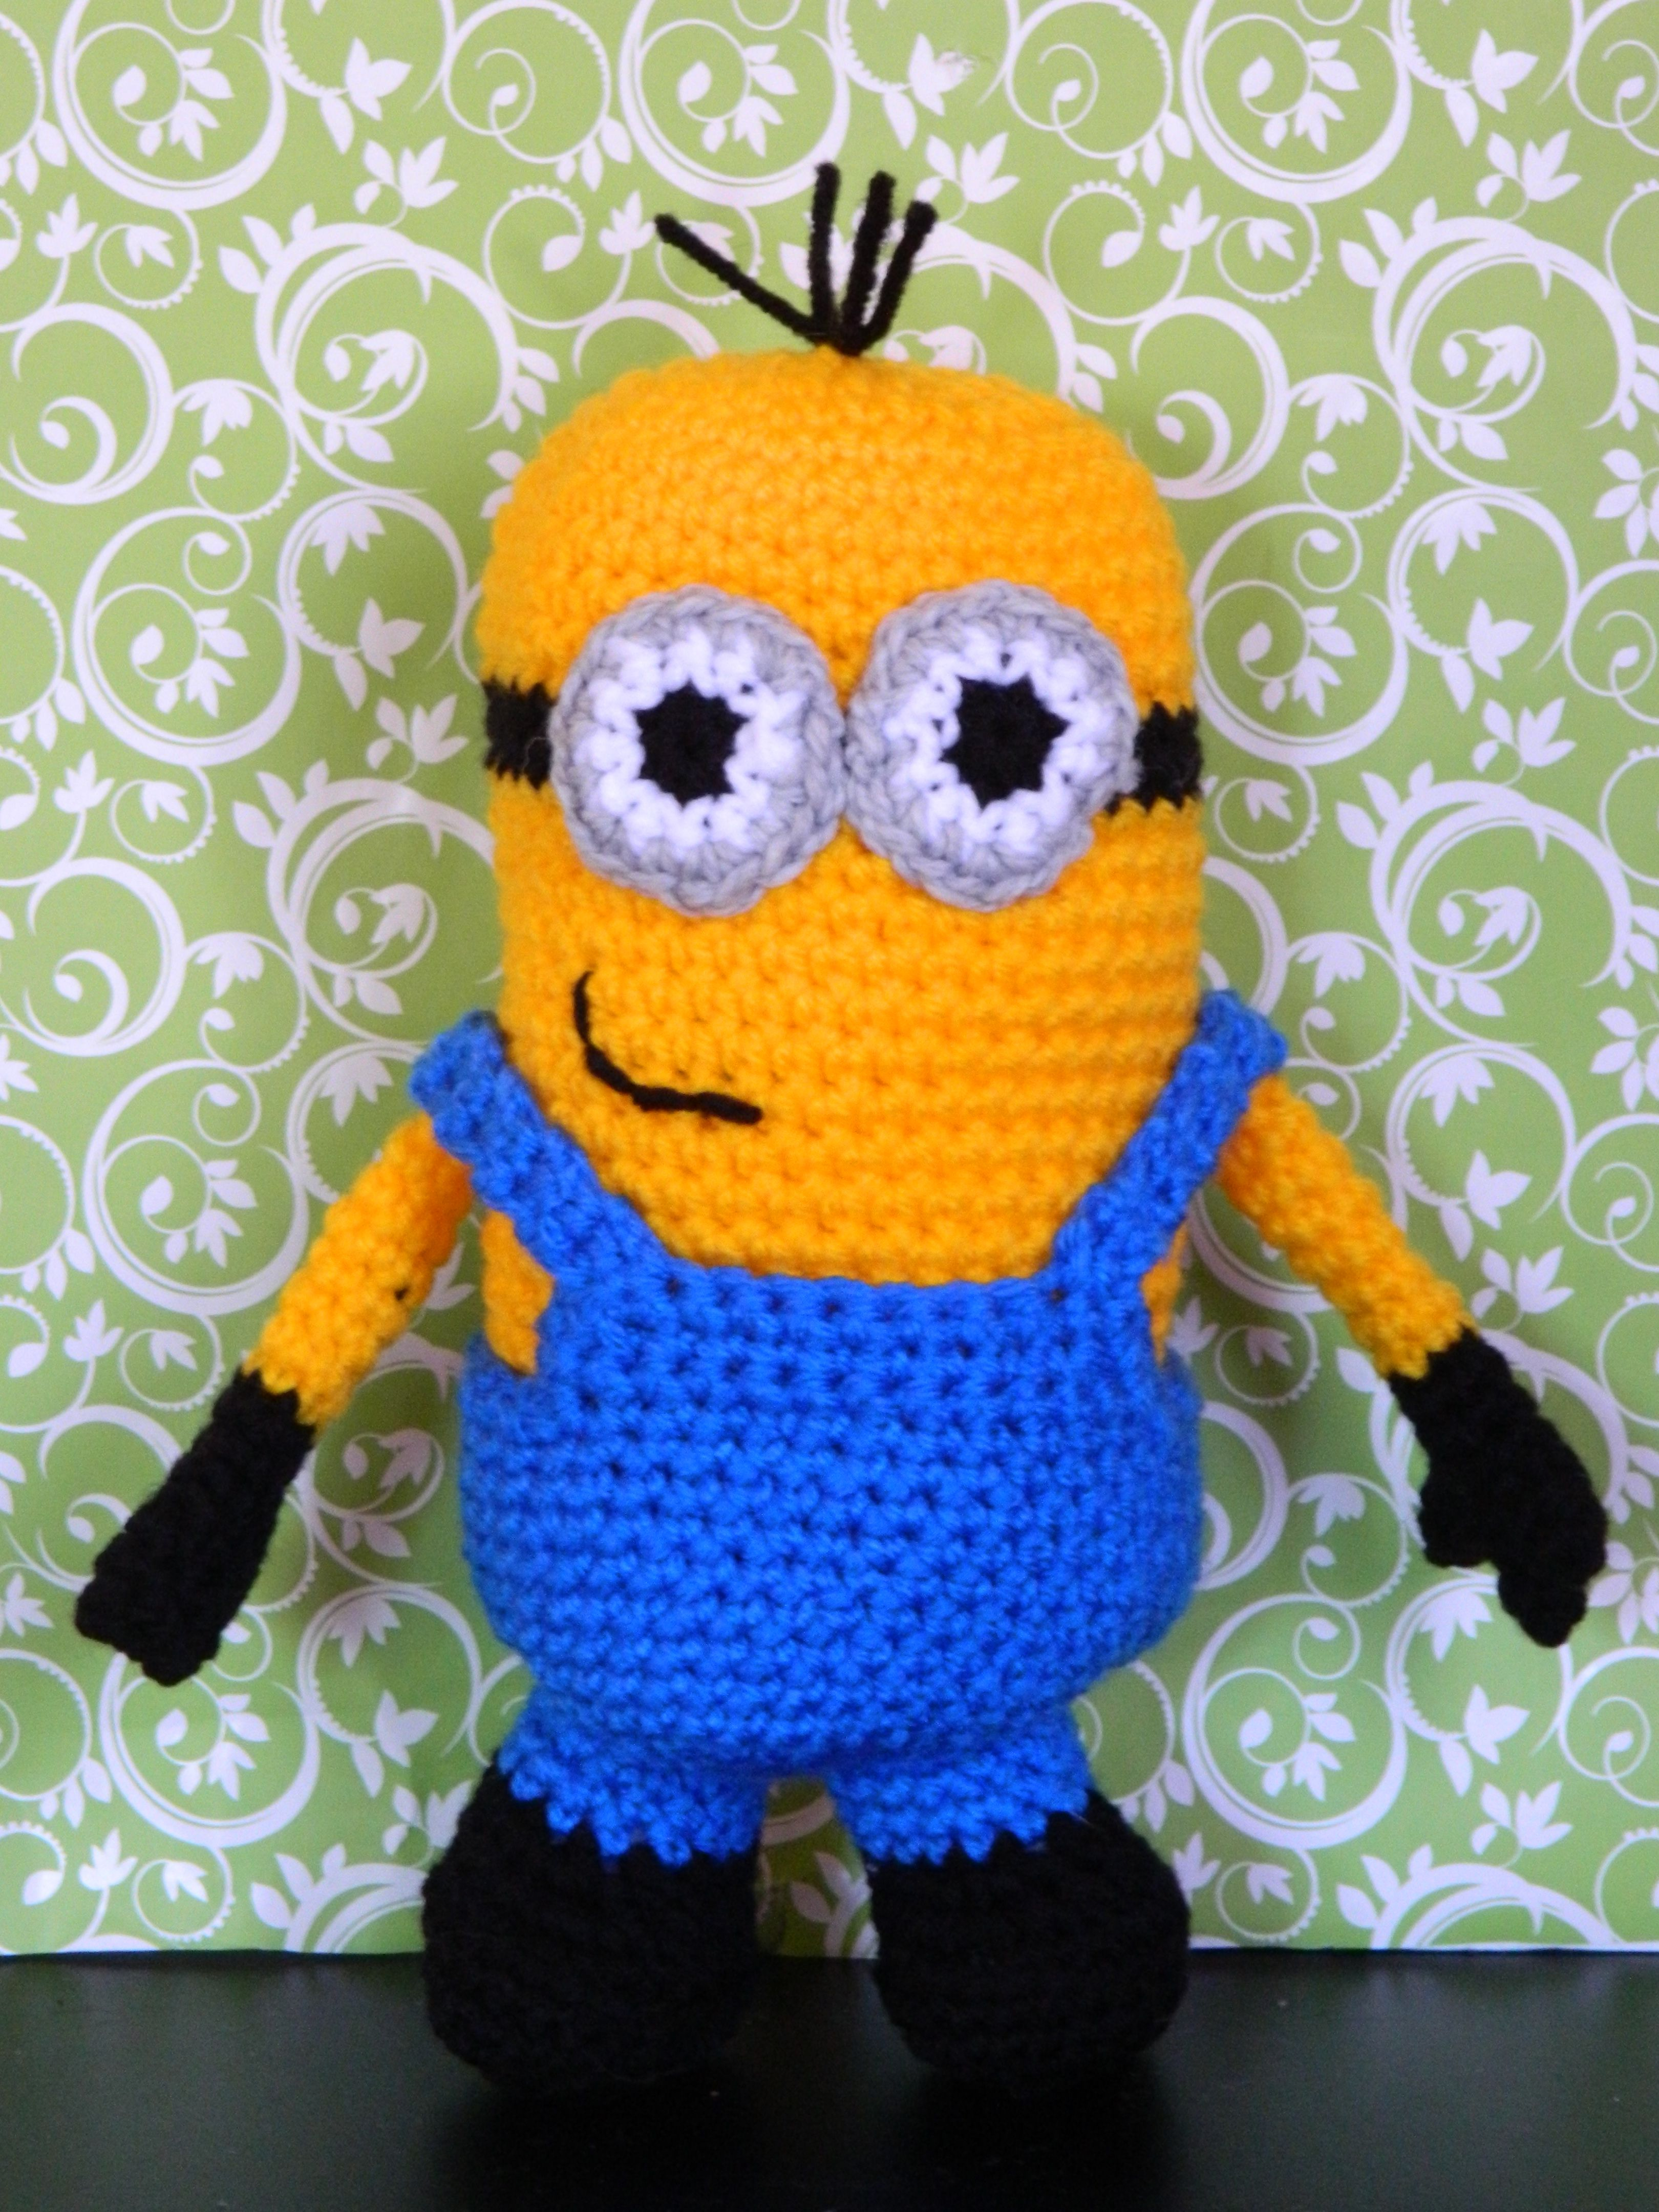 Cute crocheted Minion - www.facebook.com/LittleKrittersKnitsandKnots ...